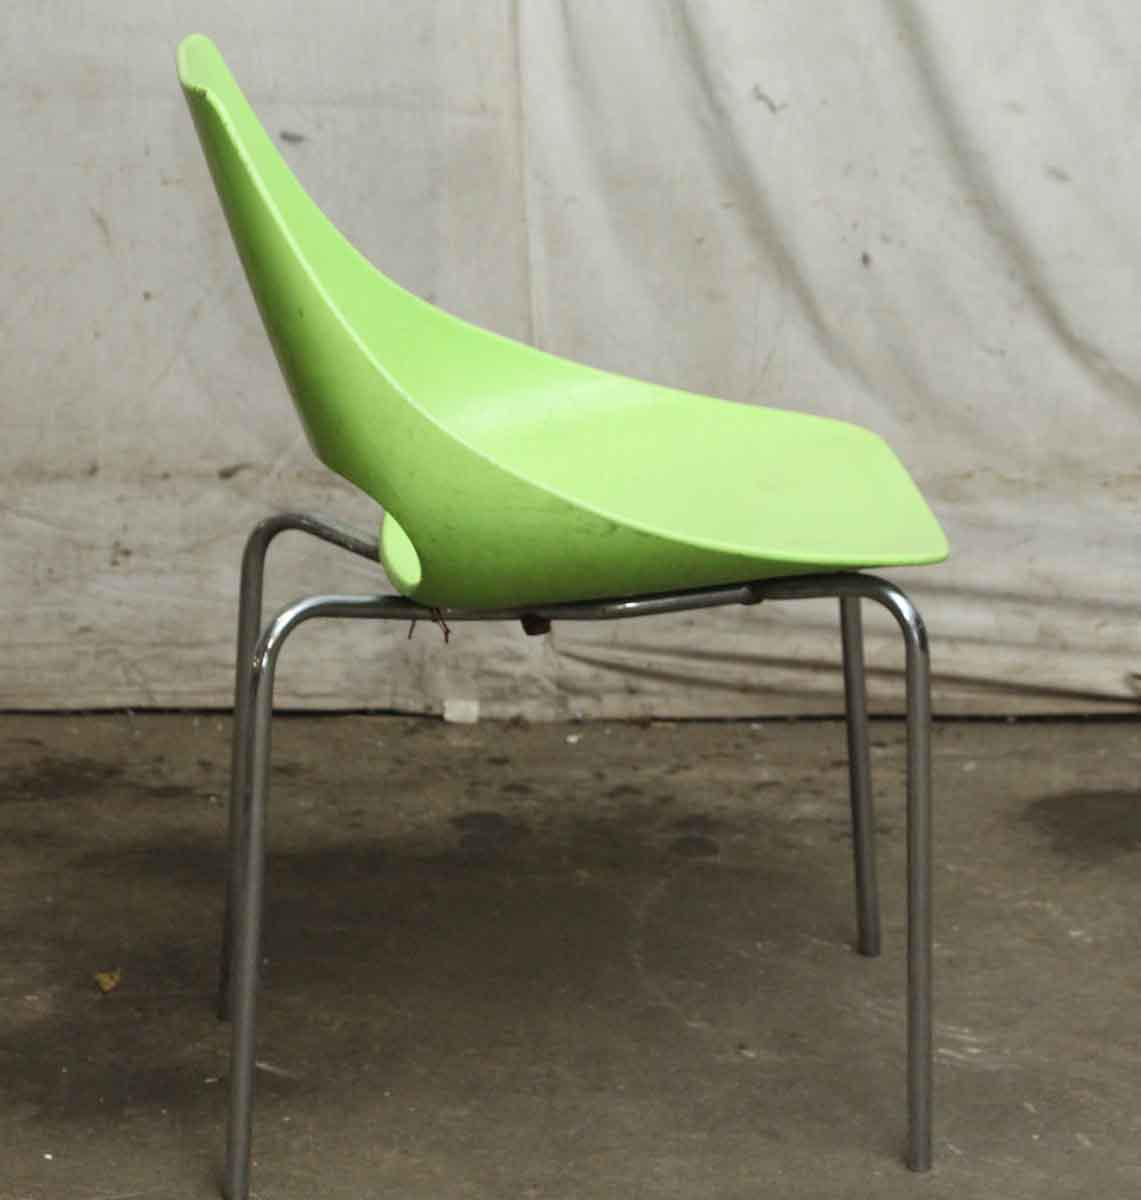 lime green chairs for sale childrens desk and chair set sri lanka metalmobil echo modern chairish image 4 of 7